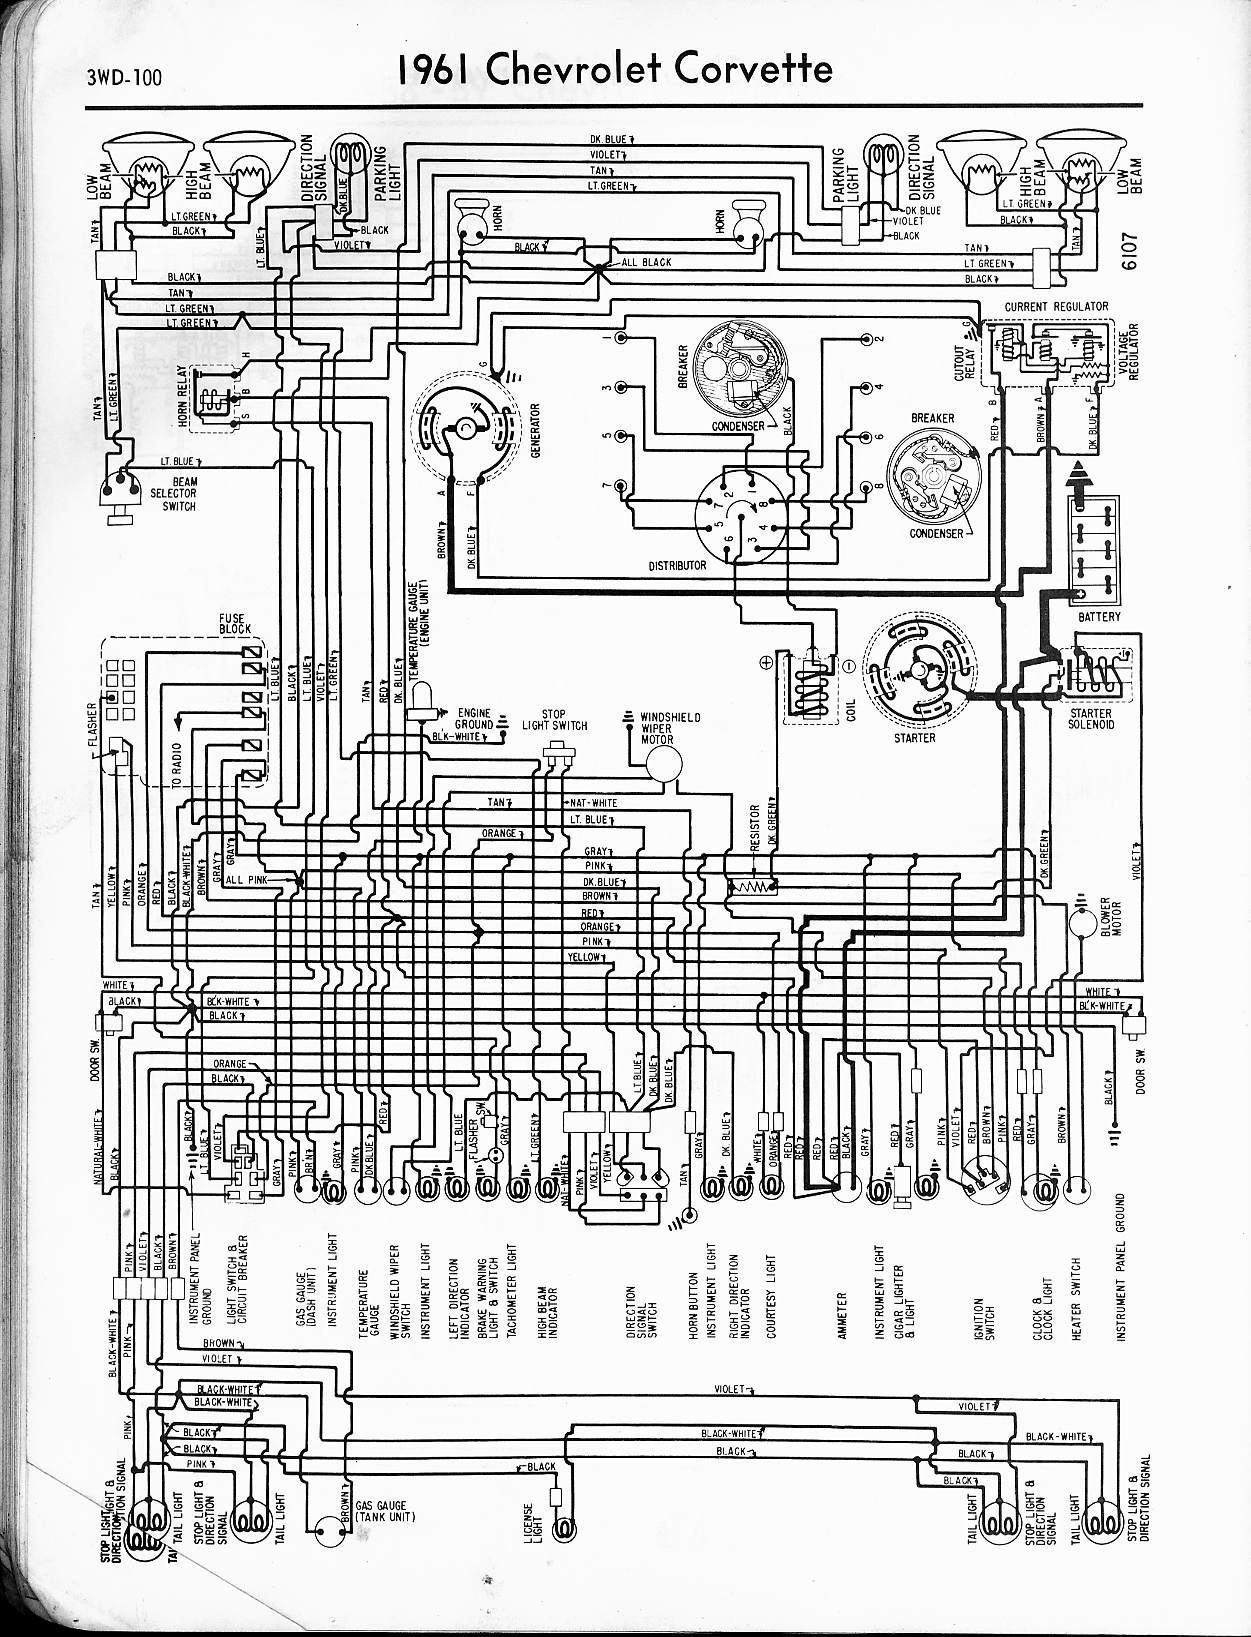 hight resolution of 1957 pontiac wiring harness schema wiring diagram 1957 pontiac wiring harness